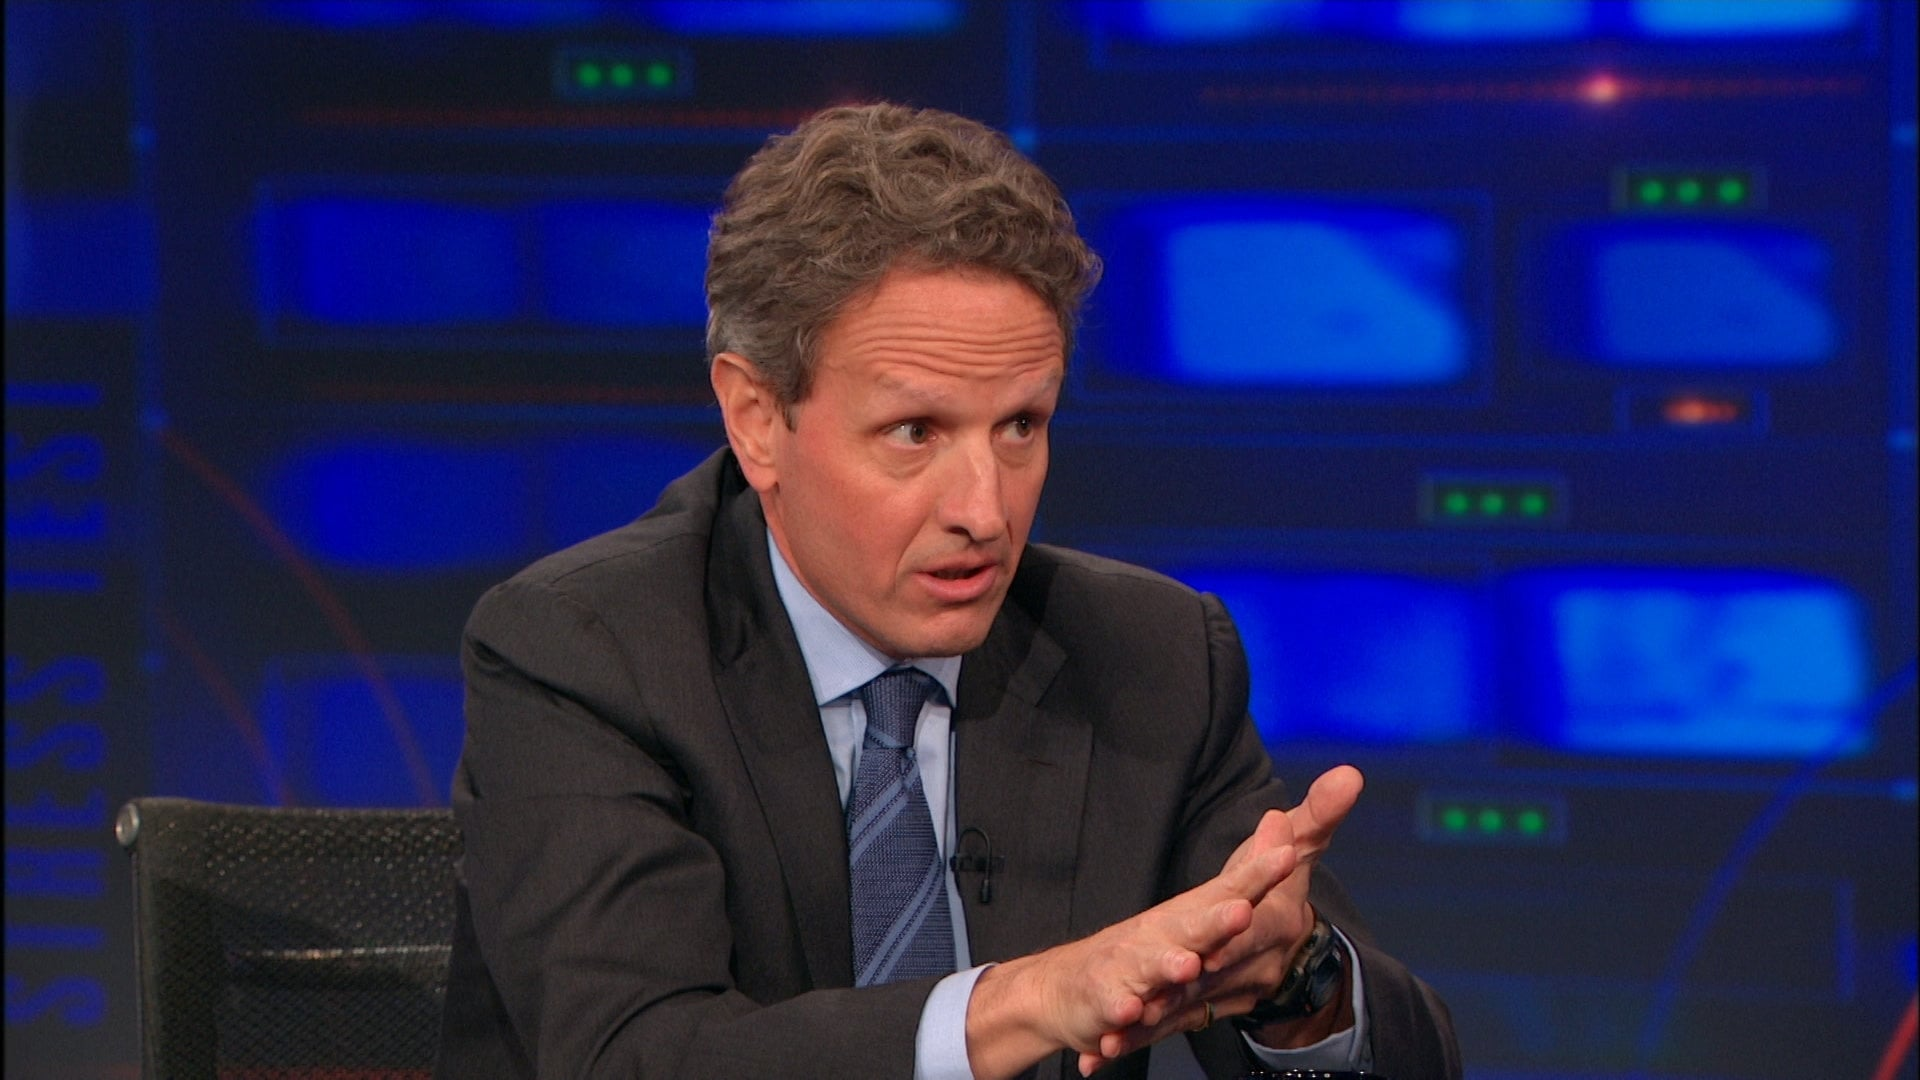 The Daily Show with Trevor Noah Season 19 :Episode 109  Timothy Geithner